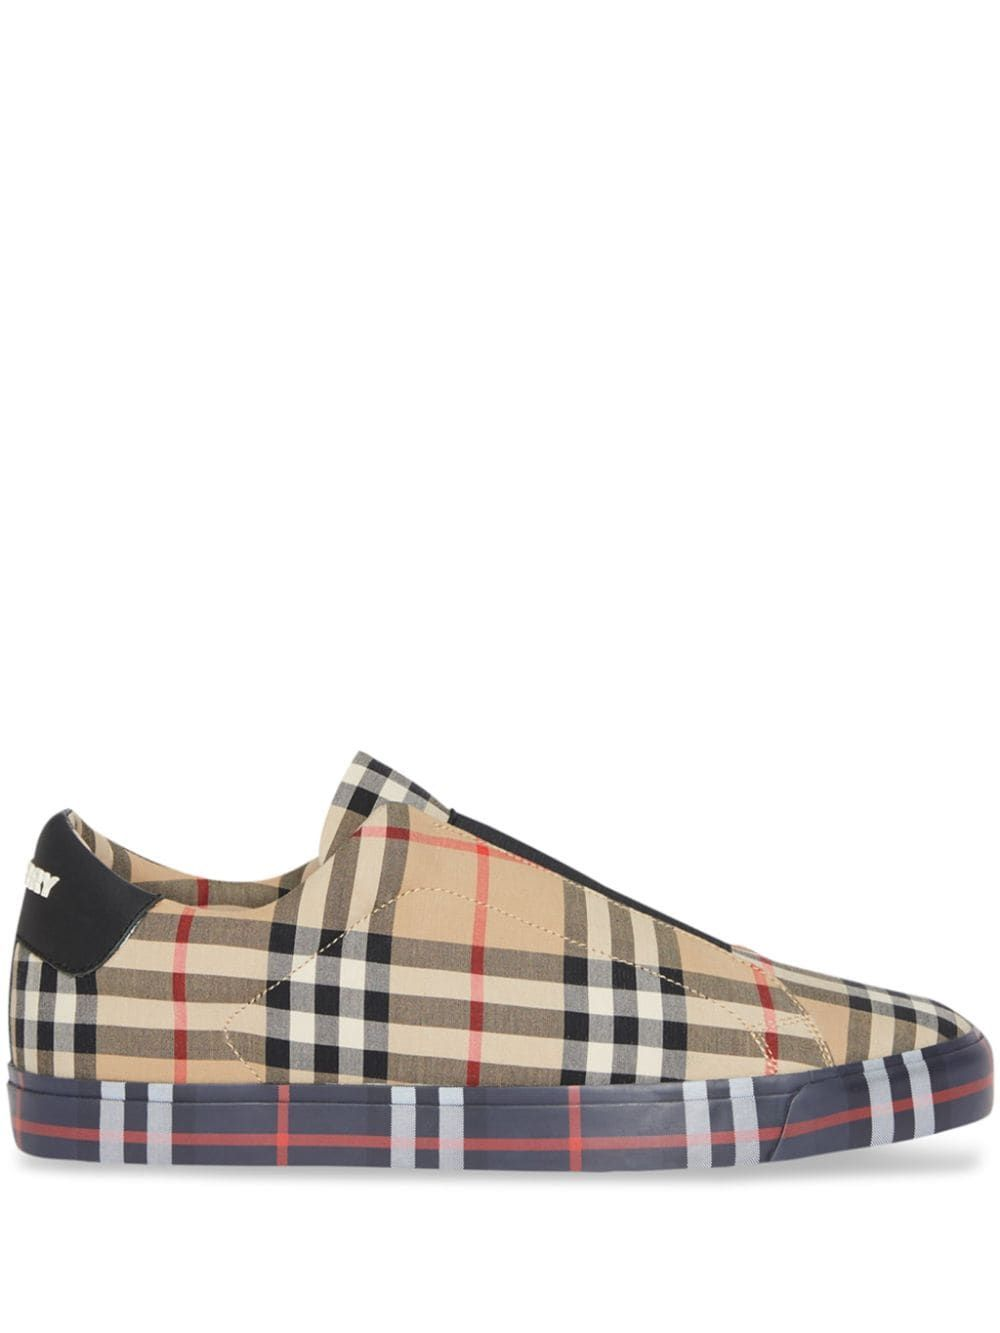 4dbe004f5 Burberry Contrast Check and Leather Slip-on Sneakers - Neutrals Burberry  Shoes, Burberry Men